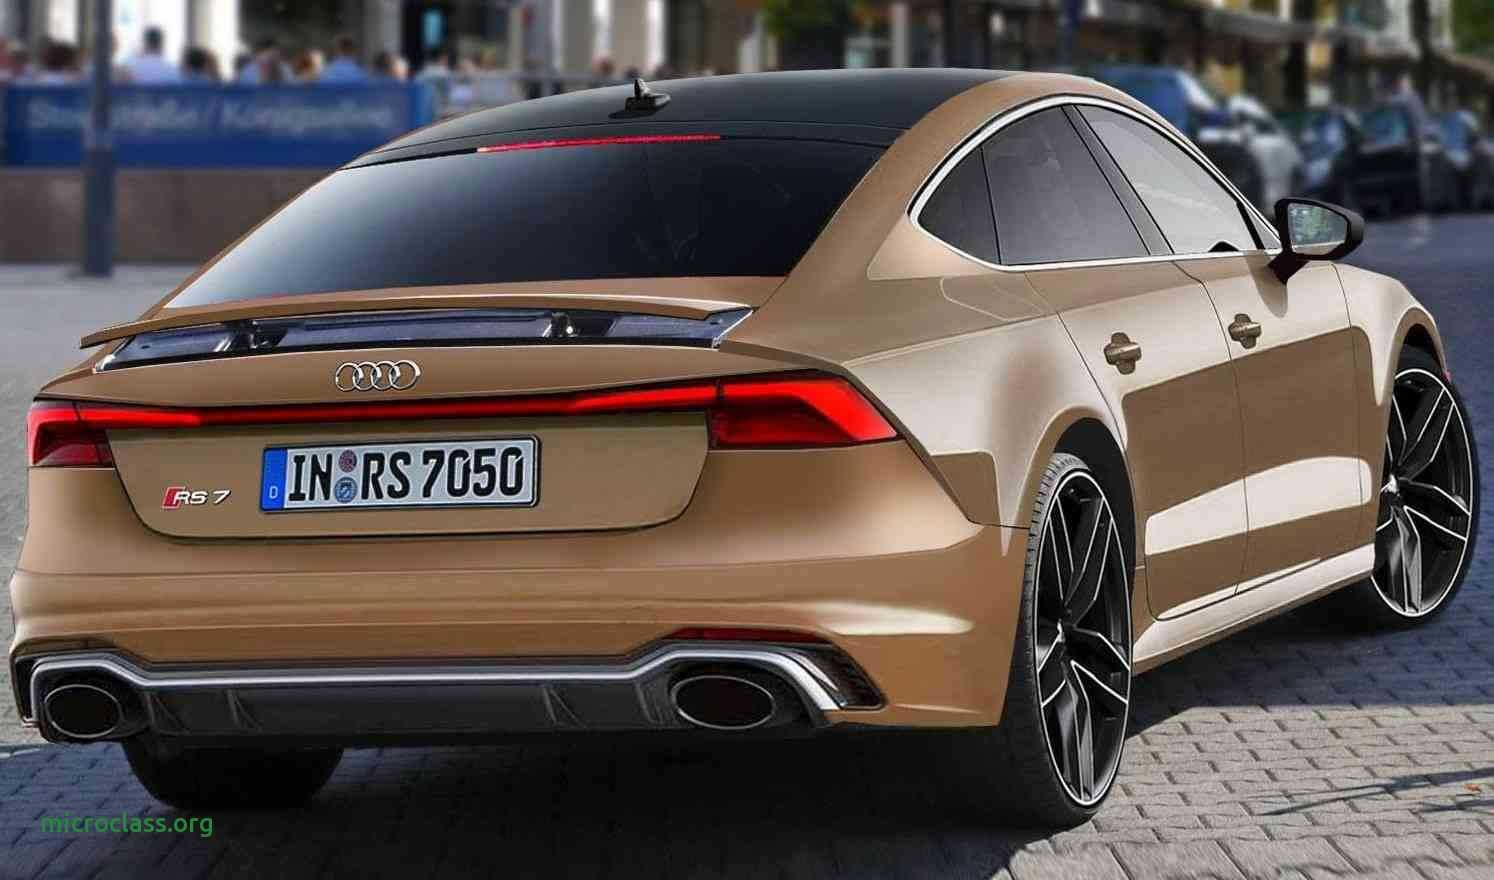 45 Best Review 2020 All Audi A9 Pictures for 2020 All Audi A9